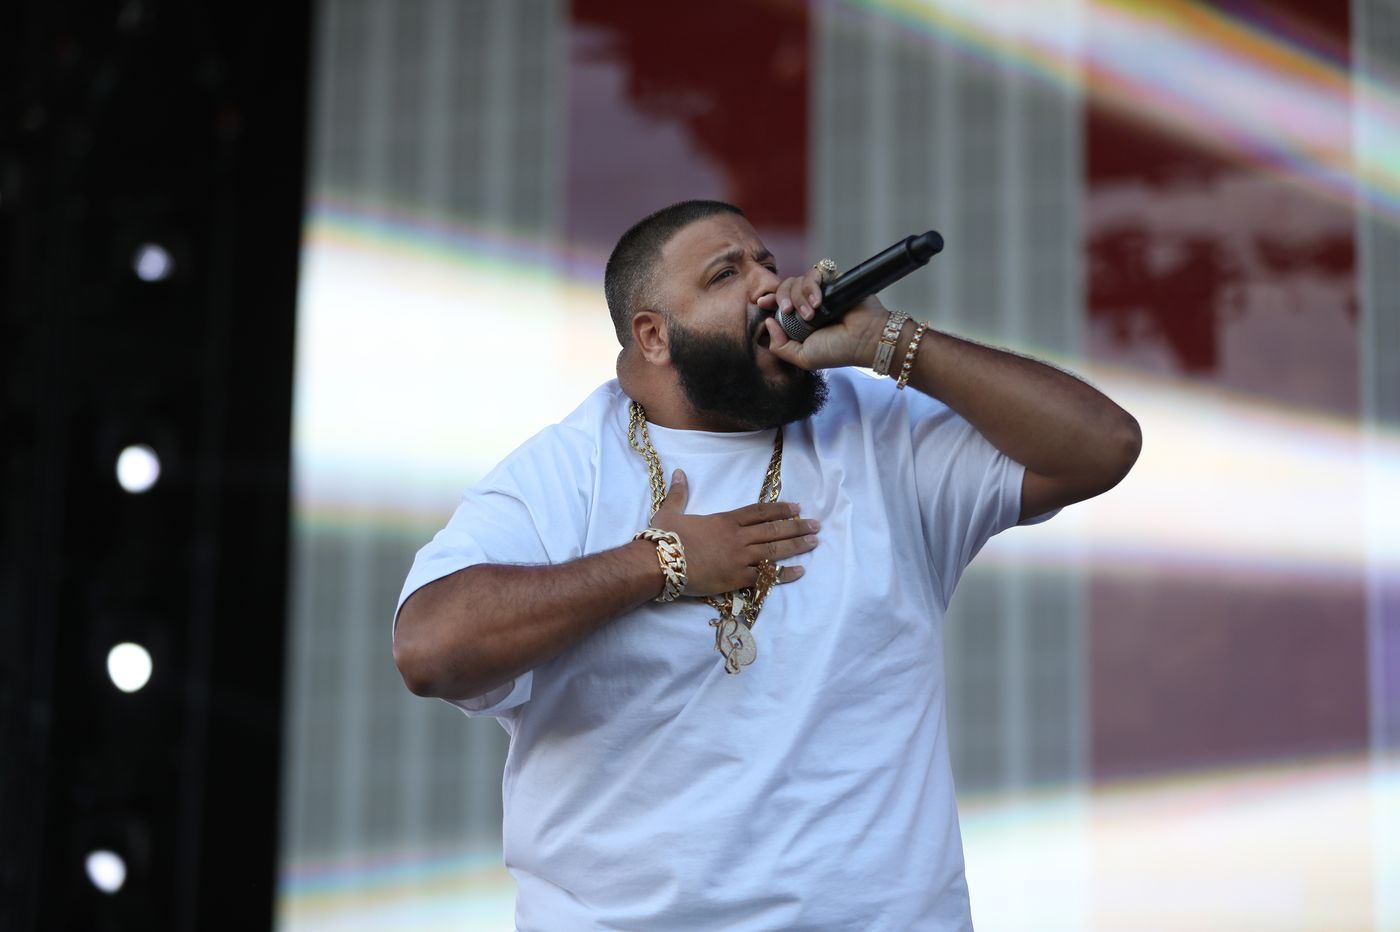 DJ Khaled stops at Max's Steaks, gets 'another one' at Geno's